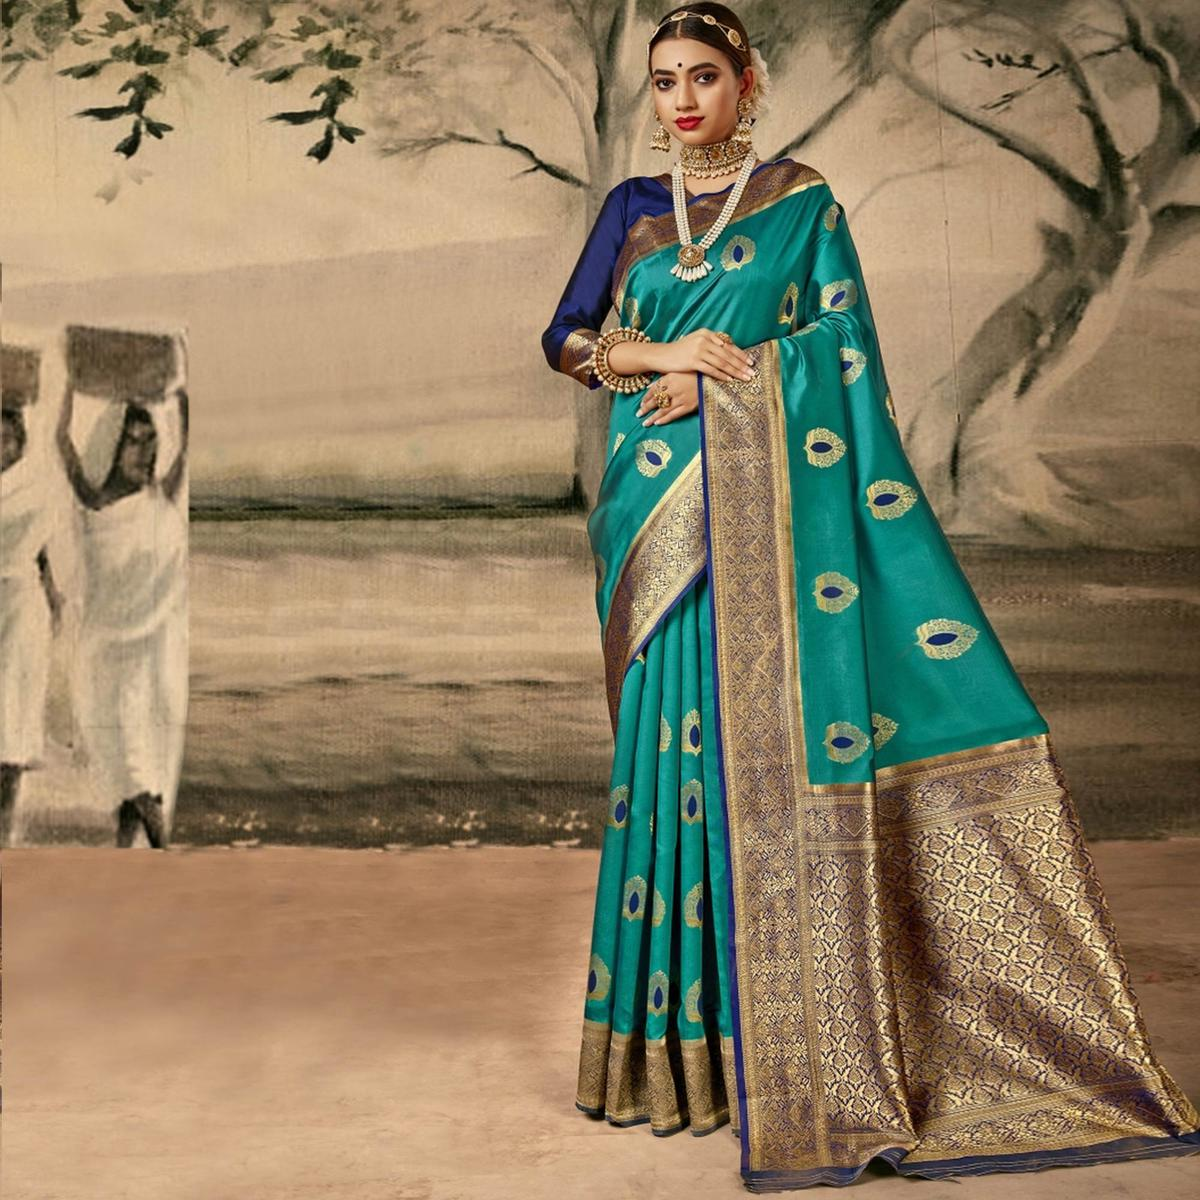 Triveni Turquoise Colored Silk Party Wear Jacquard Woven Hand Work Saree With Blouse Piece